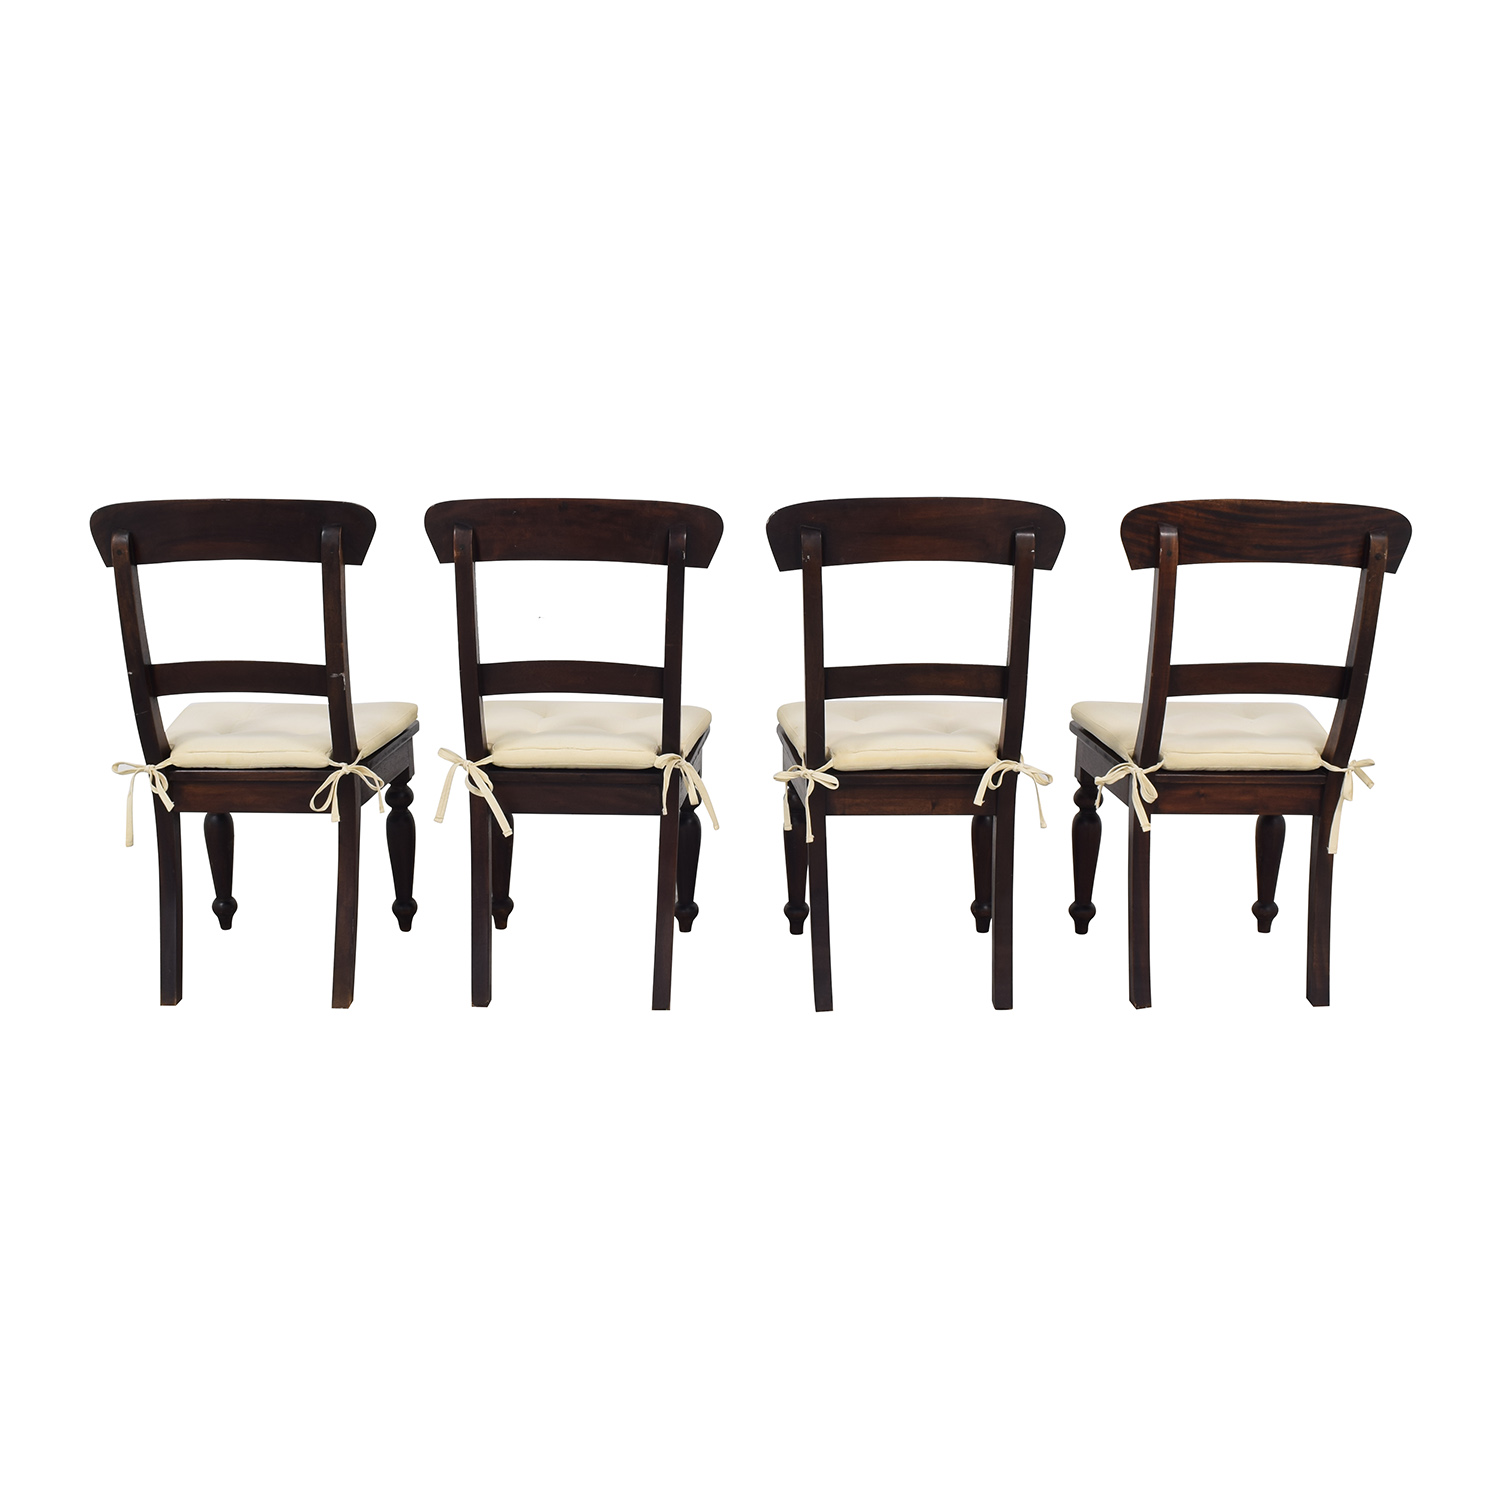 Crate & Barrel Crate & Barrel Farmhouse Dining Chairs ct